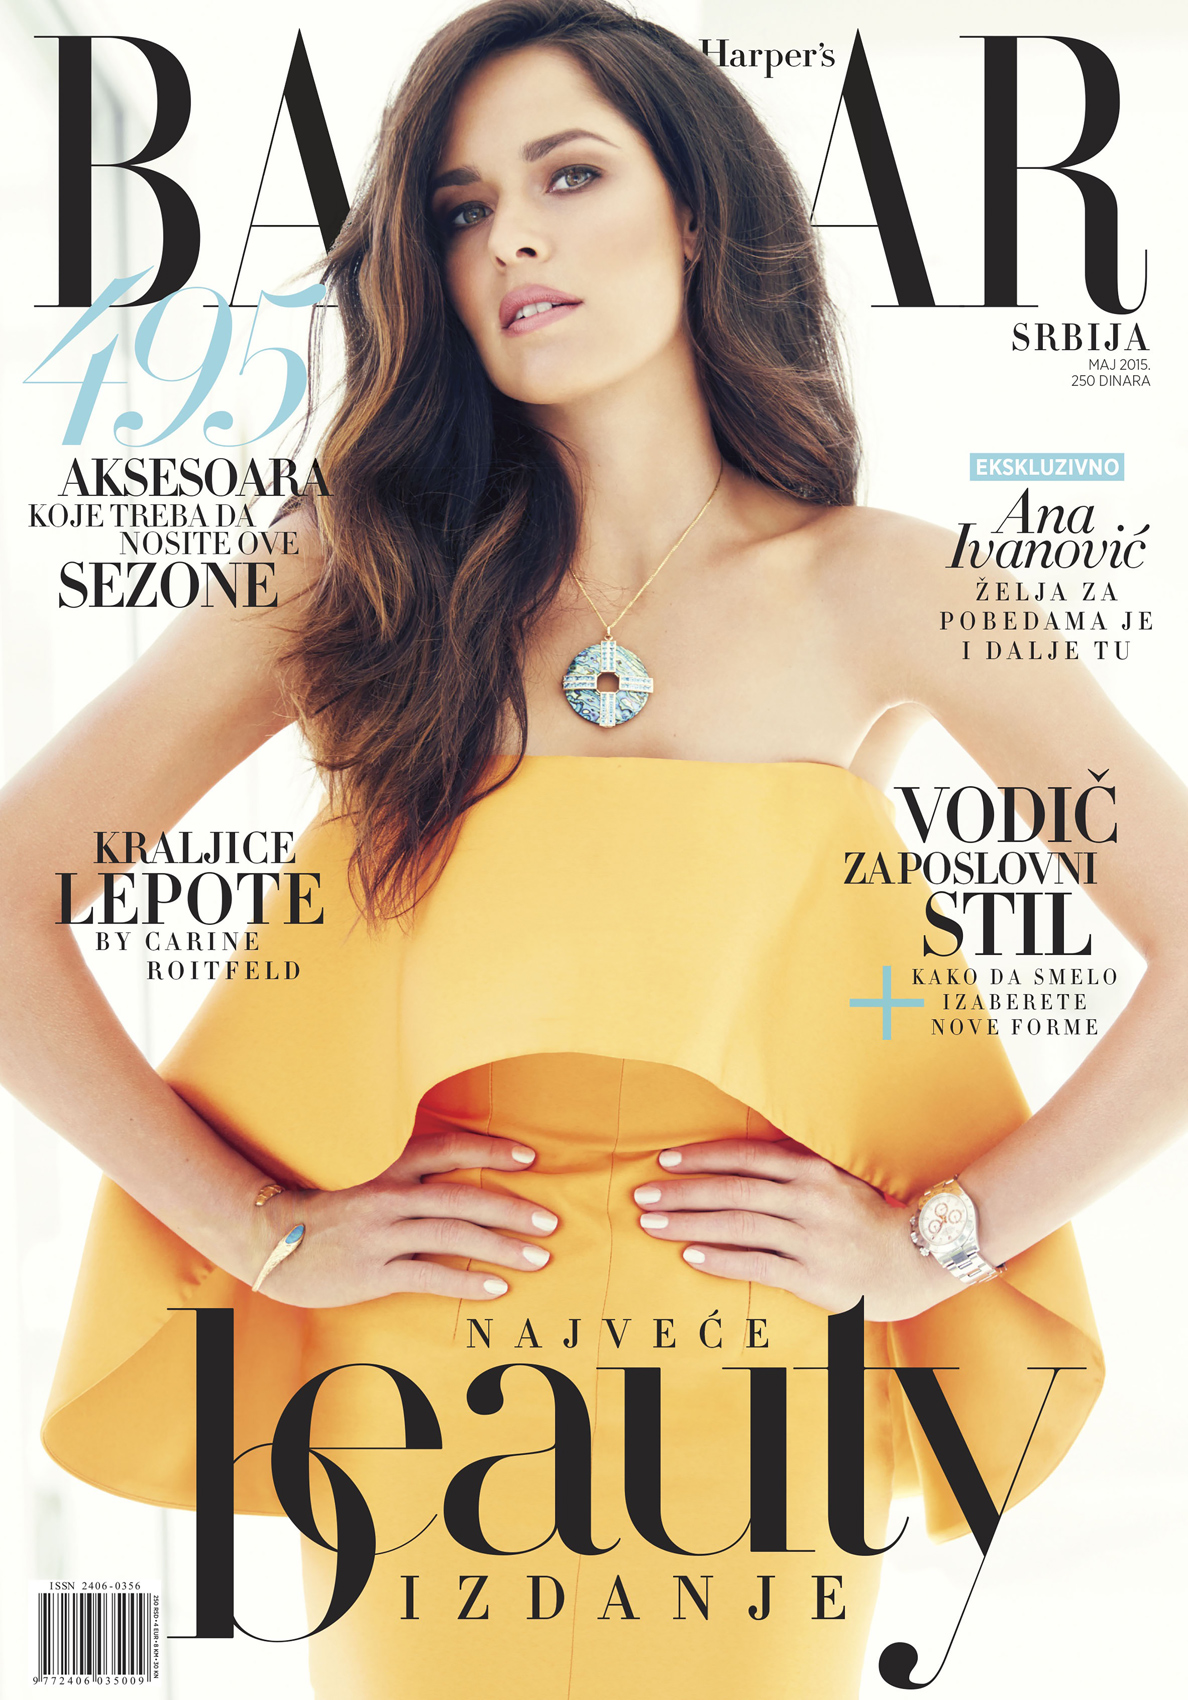 Ana-Ivanovic-Harpers-Bazaar-Serbia-Cover_web